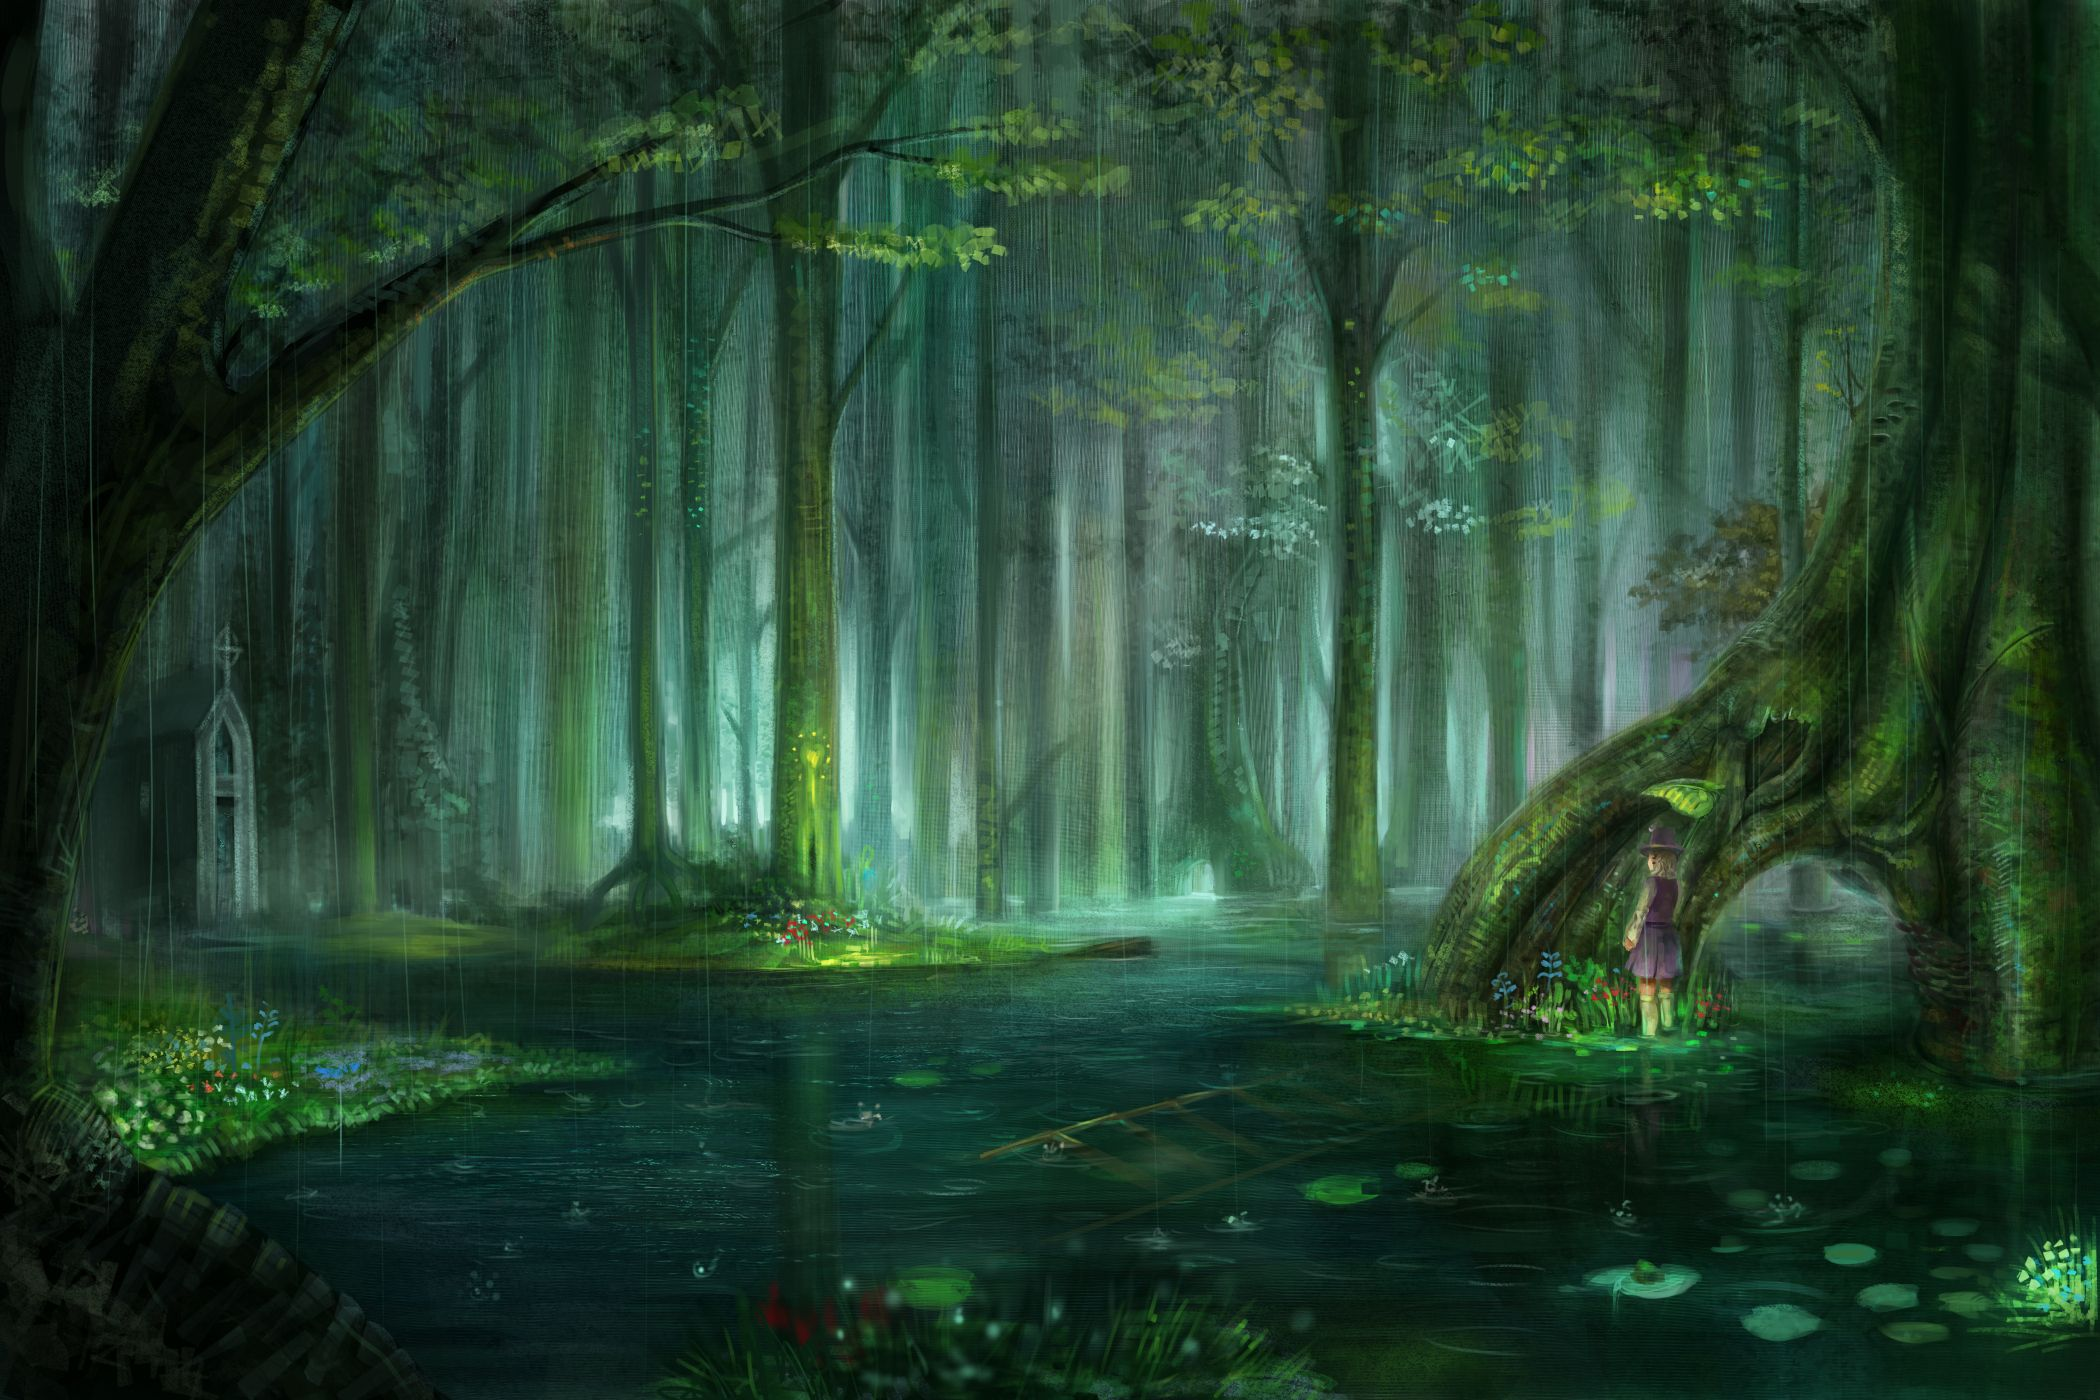 Nature Anime Background Swamp Fantasy Forest Forest